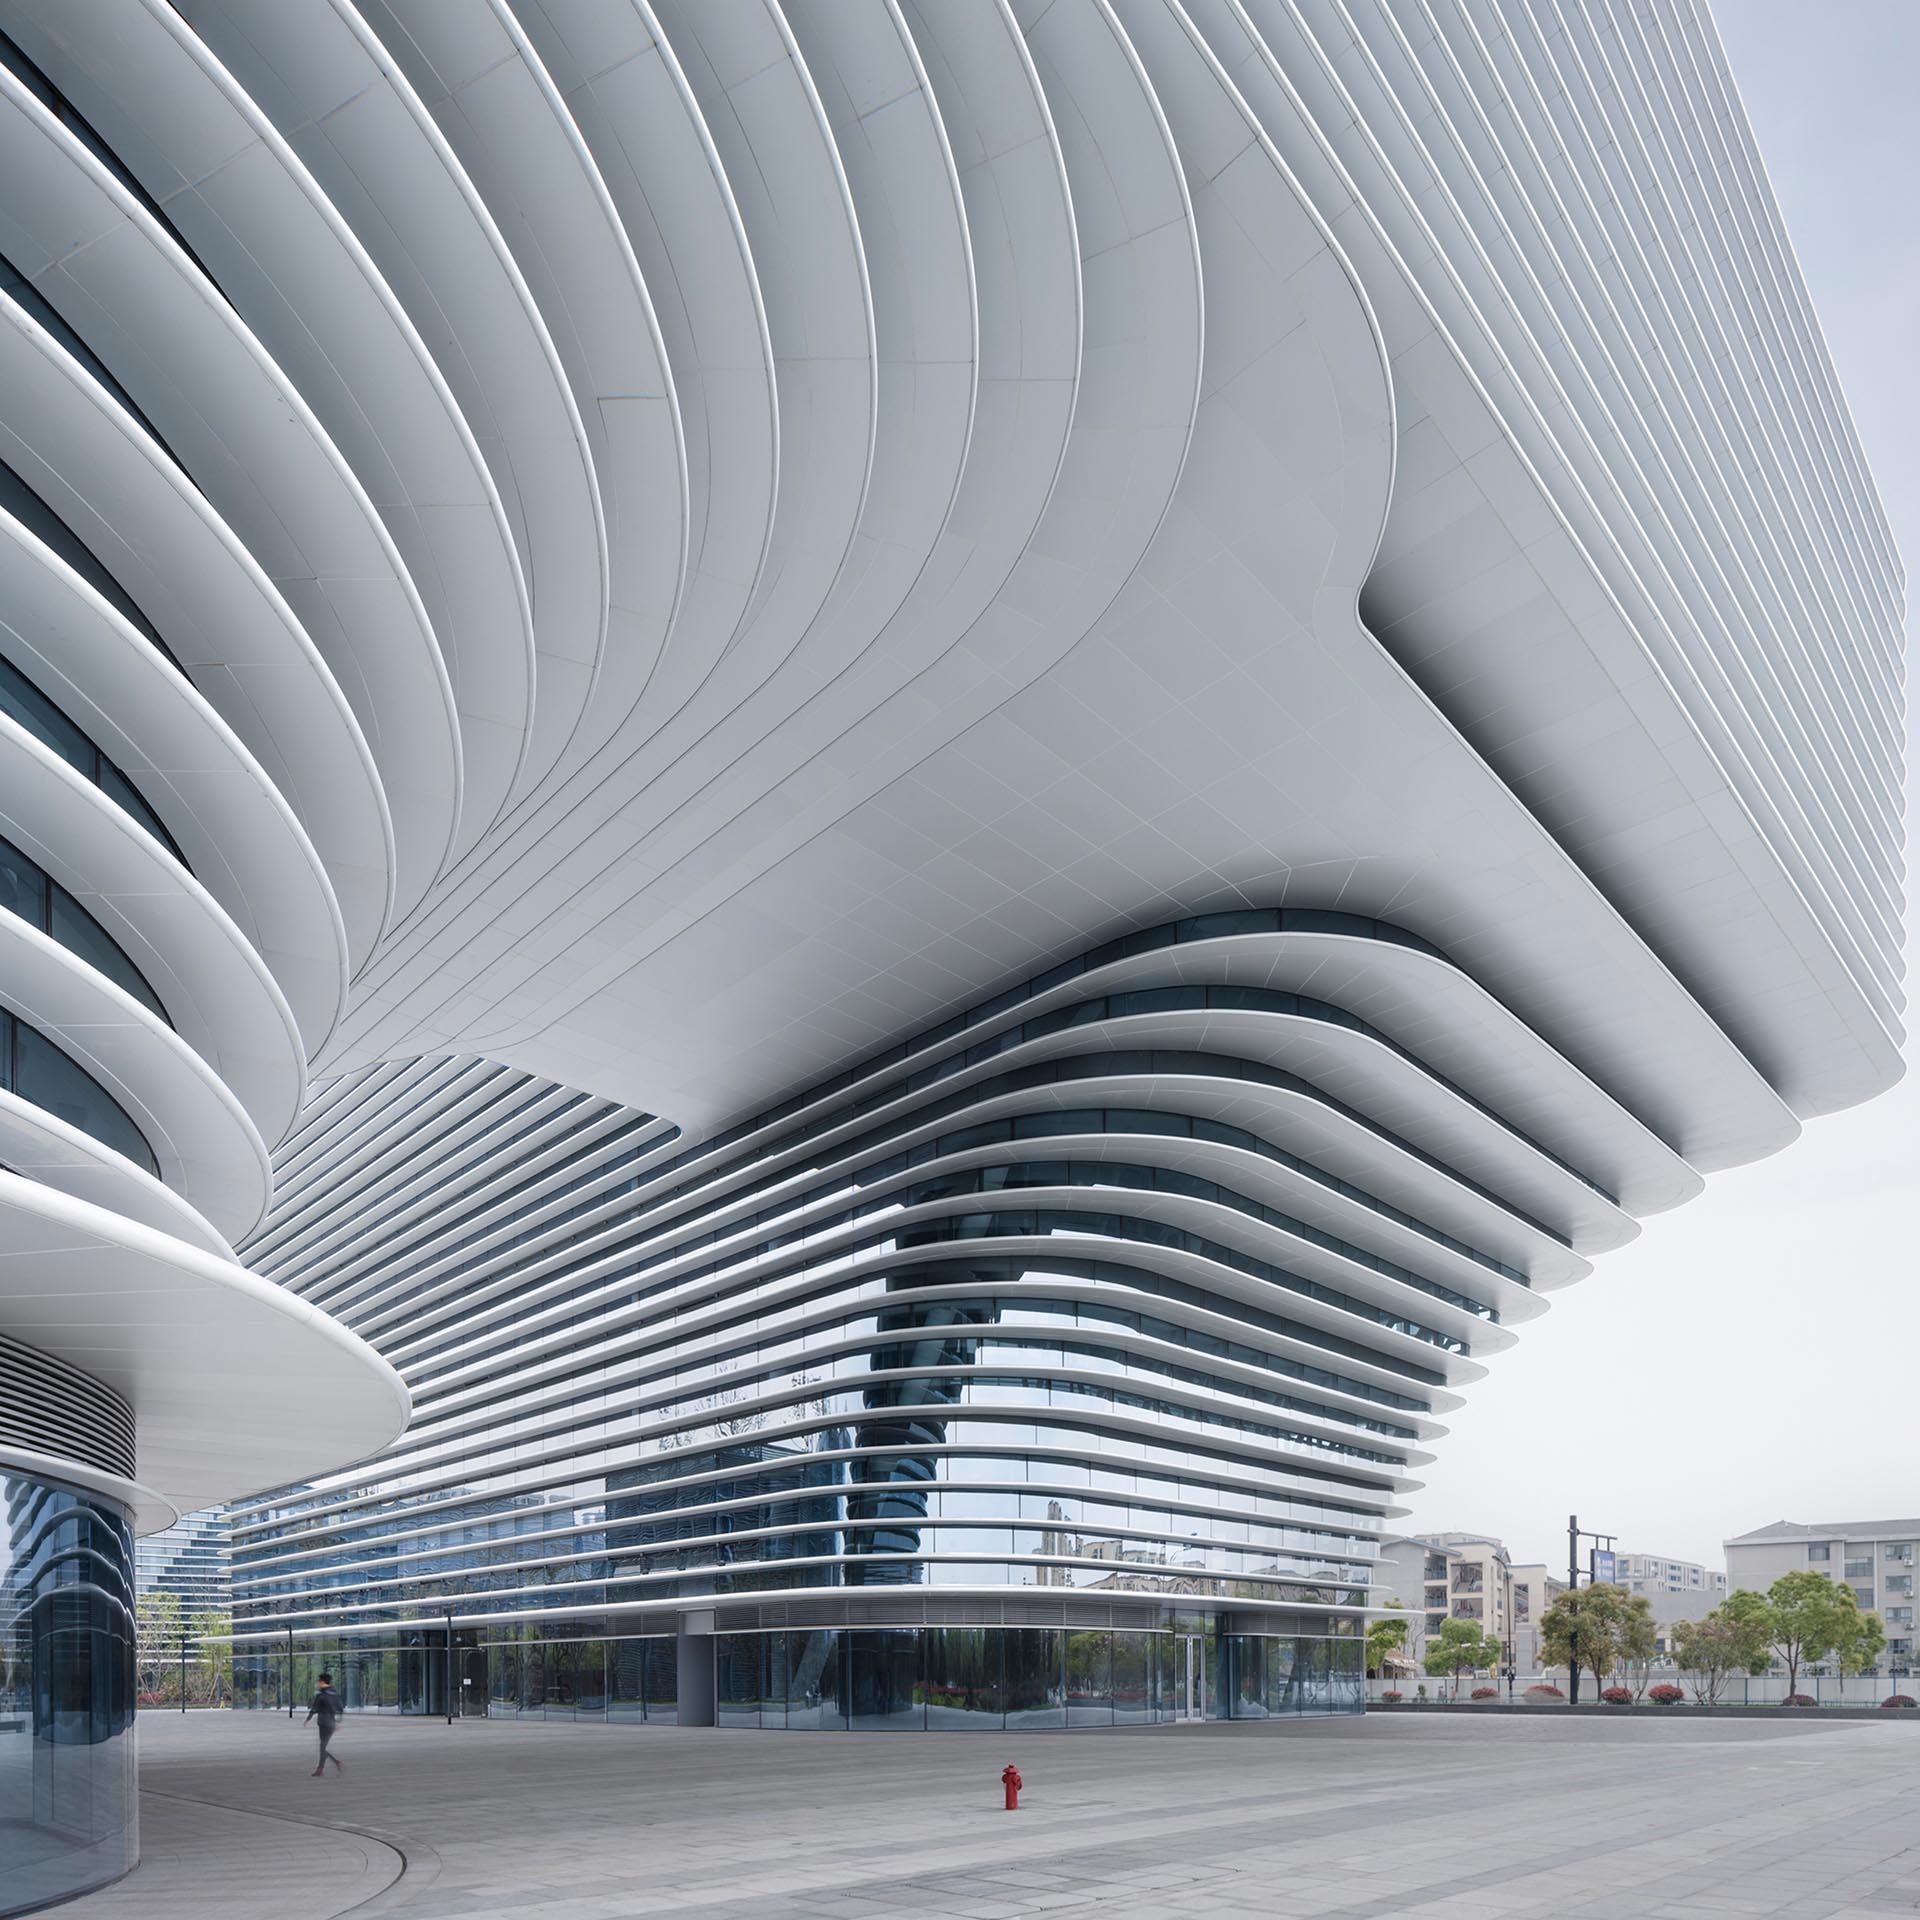 A modern white building named 'Cloud Park', designed by Meng Fanhao.